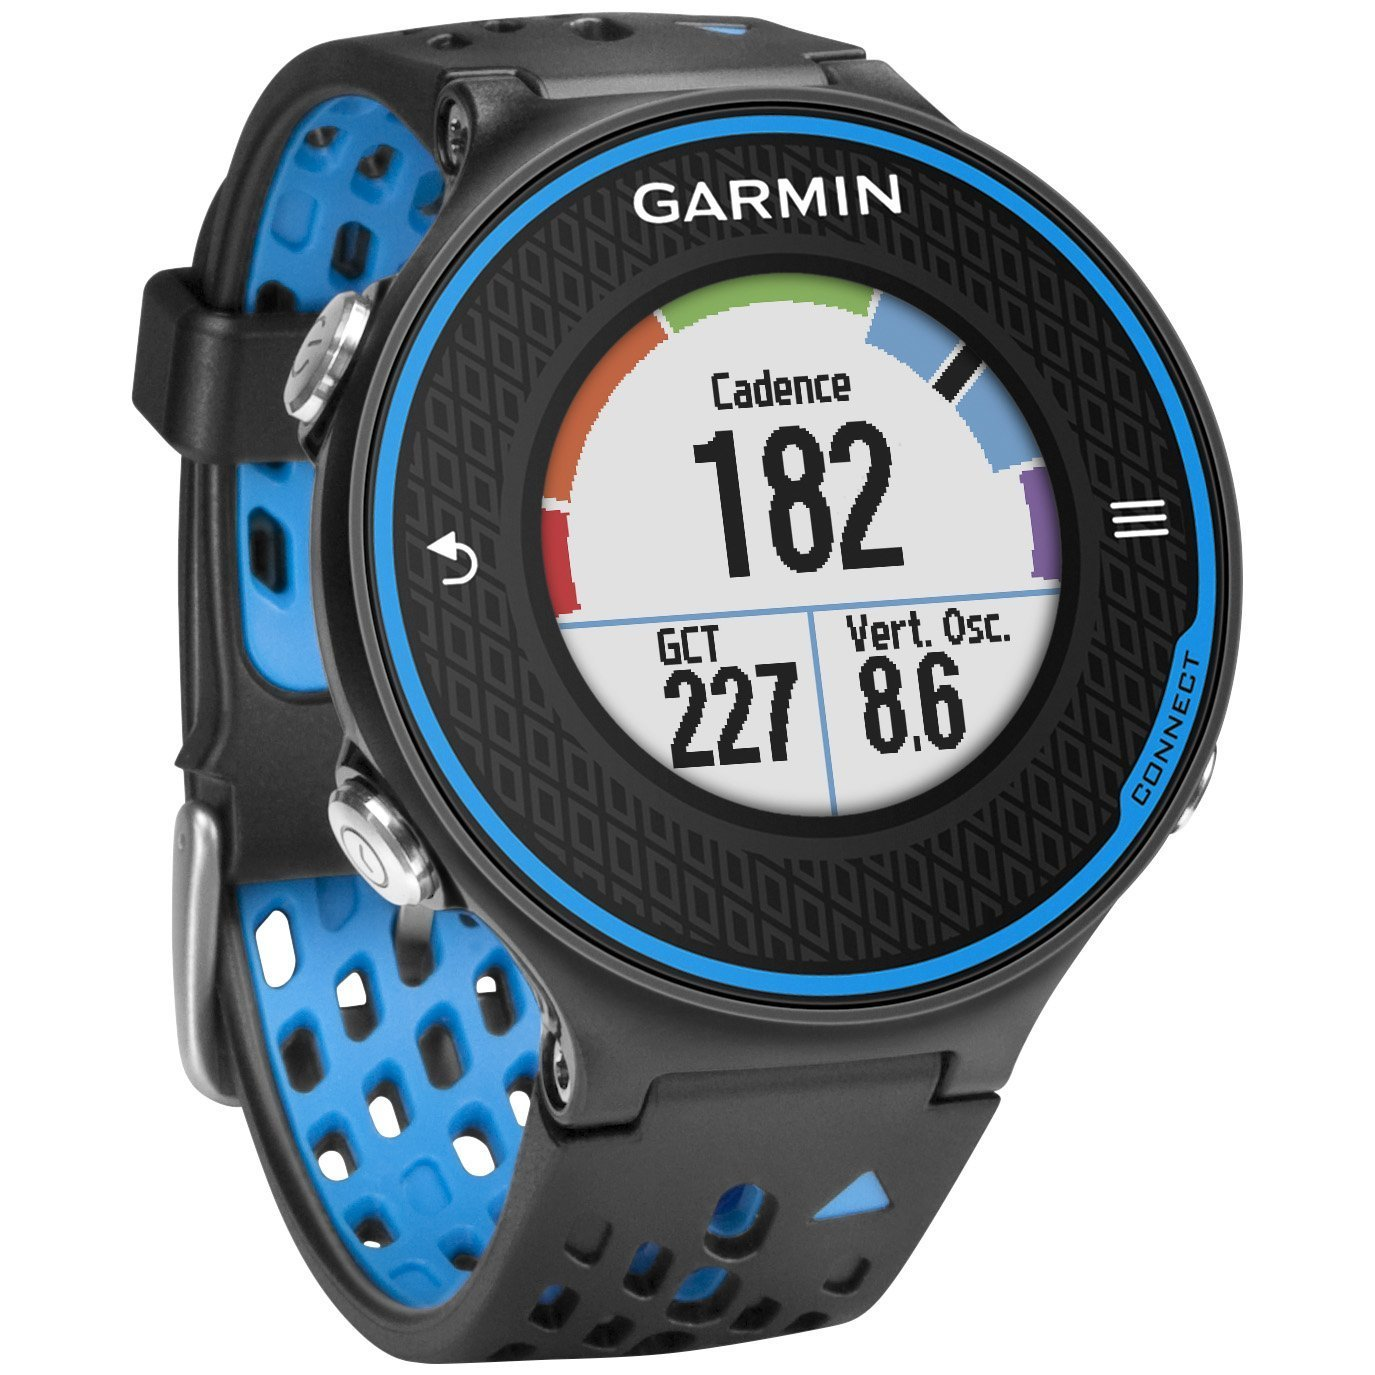 Garmin Forerunner 620 GPS Sport Fitness Running Watch - Black/blue (Certified Refurbished) by Garmin